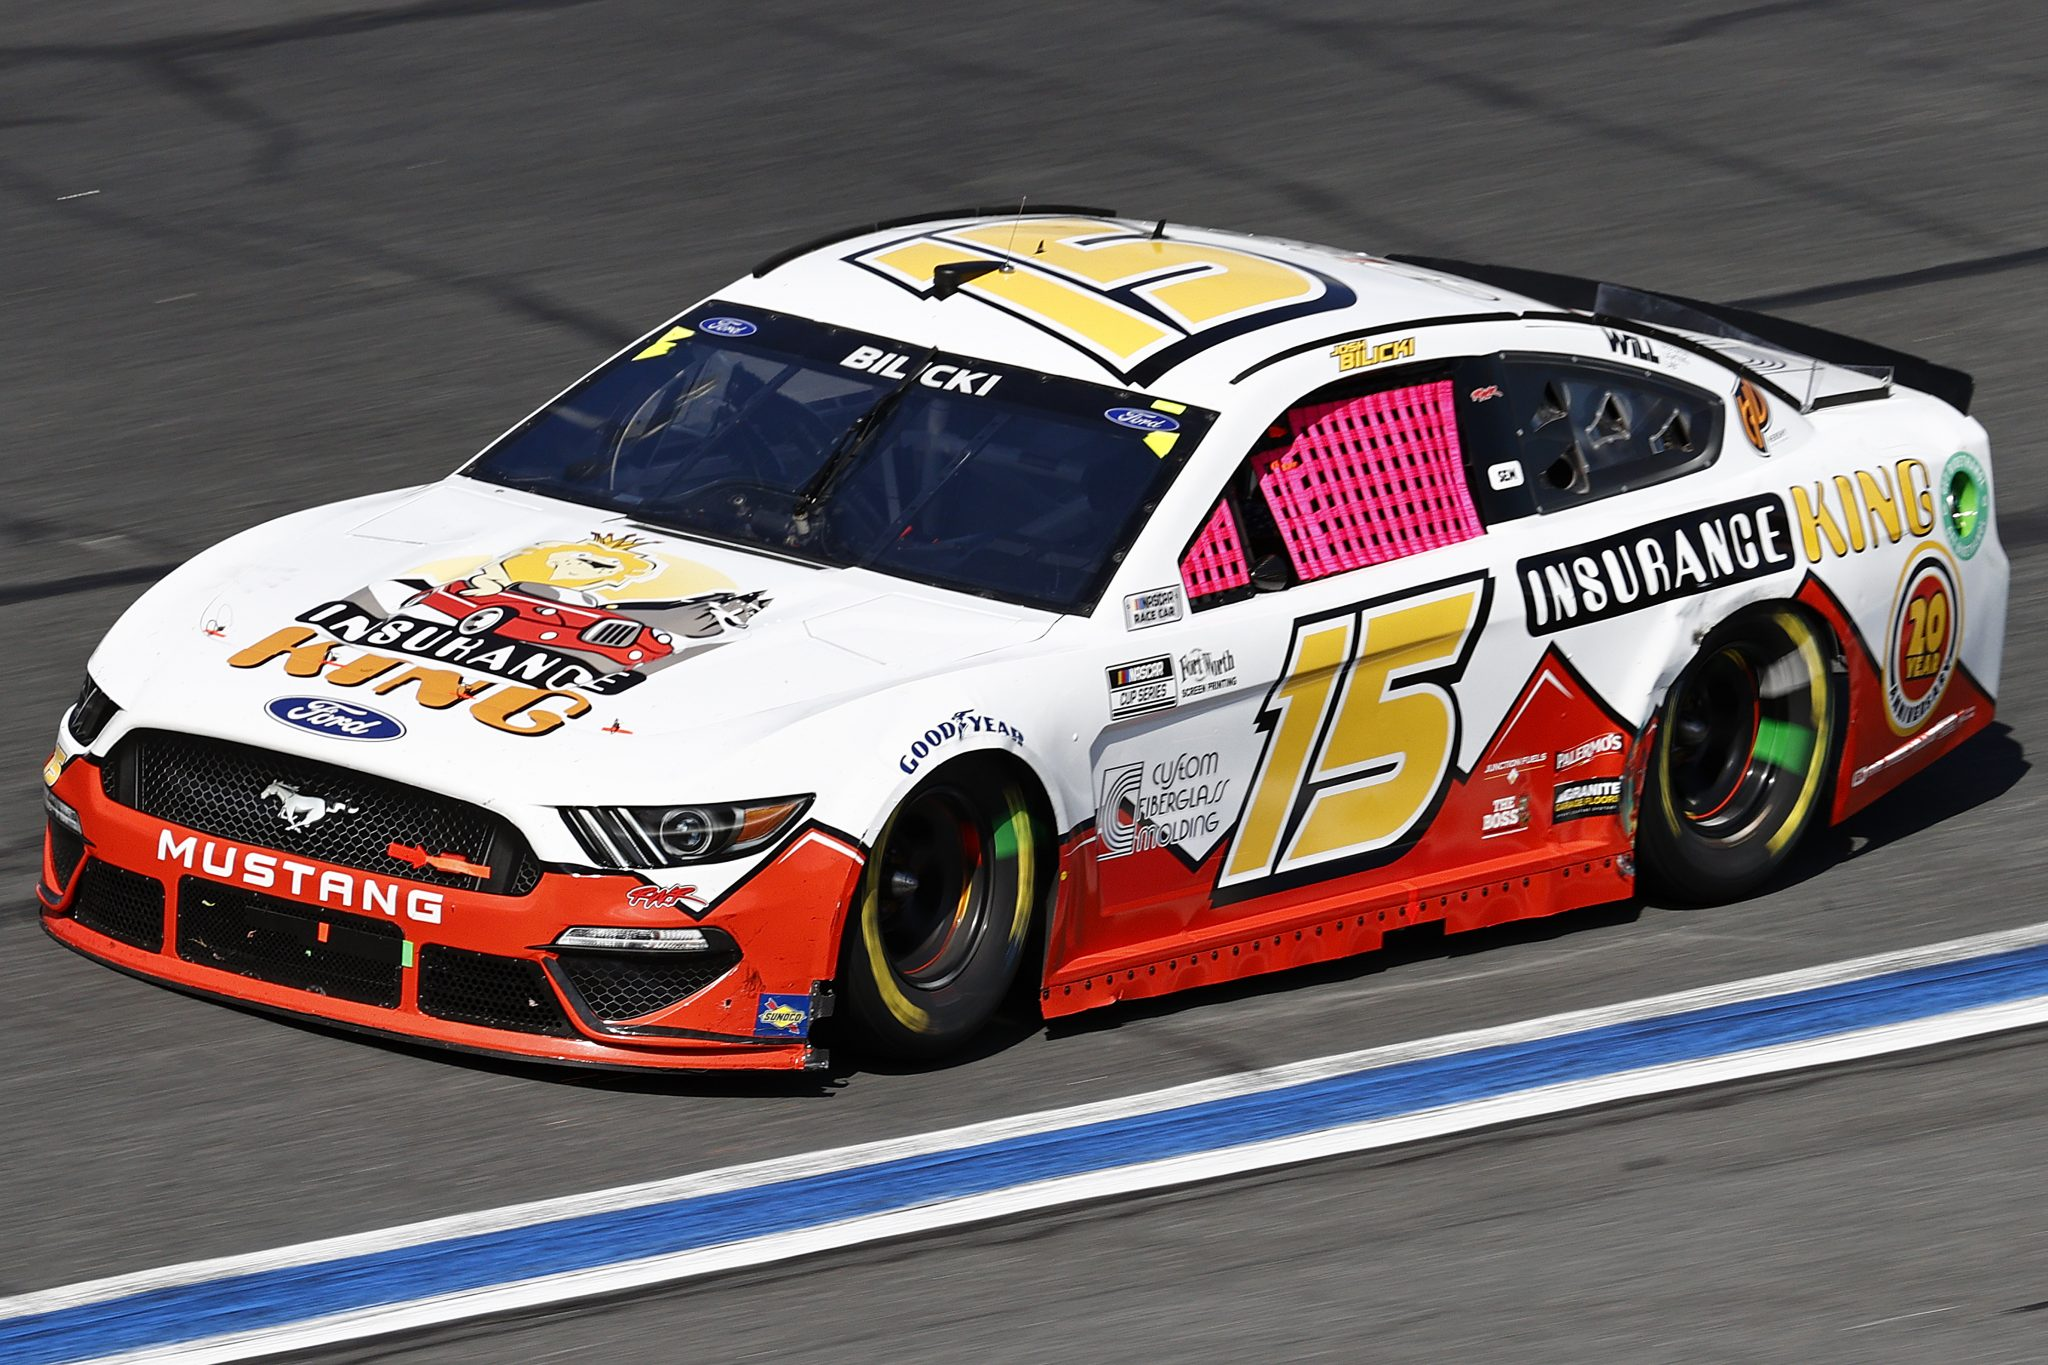 CONCORD, NORTH CAROLINA - OCTOBER 10: Josh Bilicki, driver of the #15 Insurance King Ford, drives during the NASCAR Cup Series Bank of America ROVAL 400 at Charlotte Motor Speedway on October 10, 2021 in Concord, North Carolina. (Photo by Jared C. Tilton/Getty Images) | Getty Images